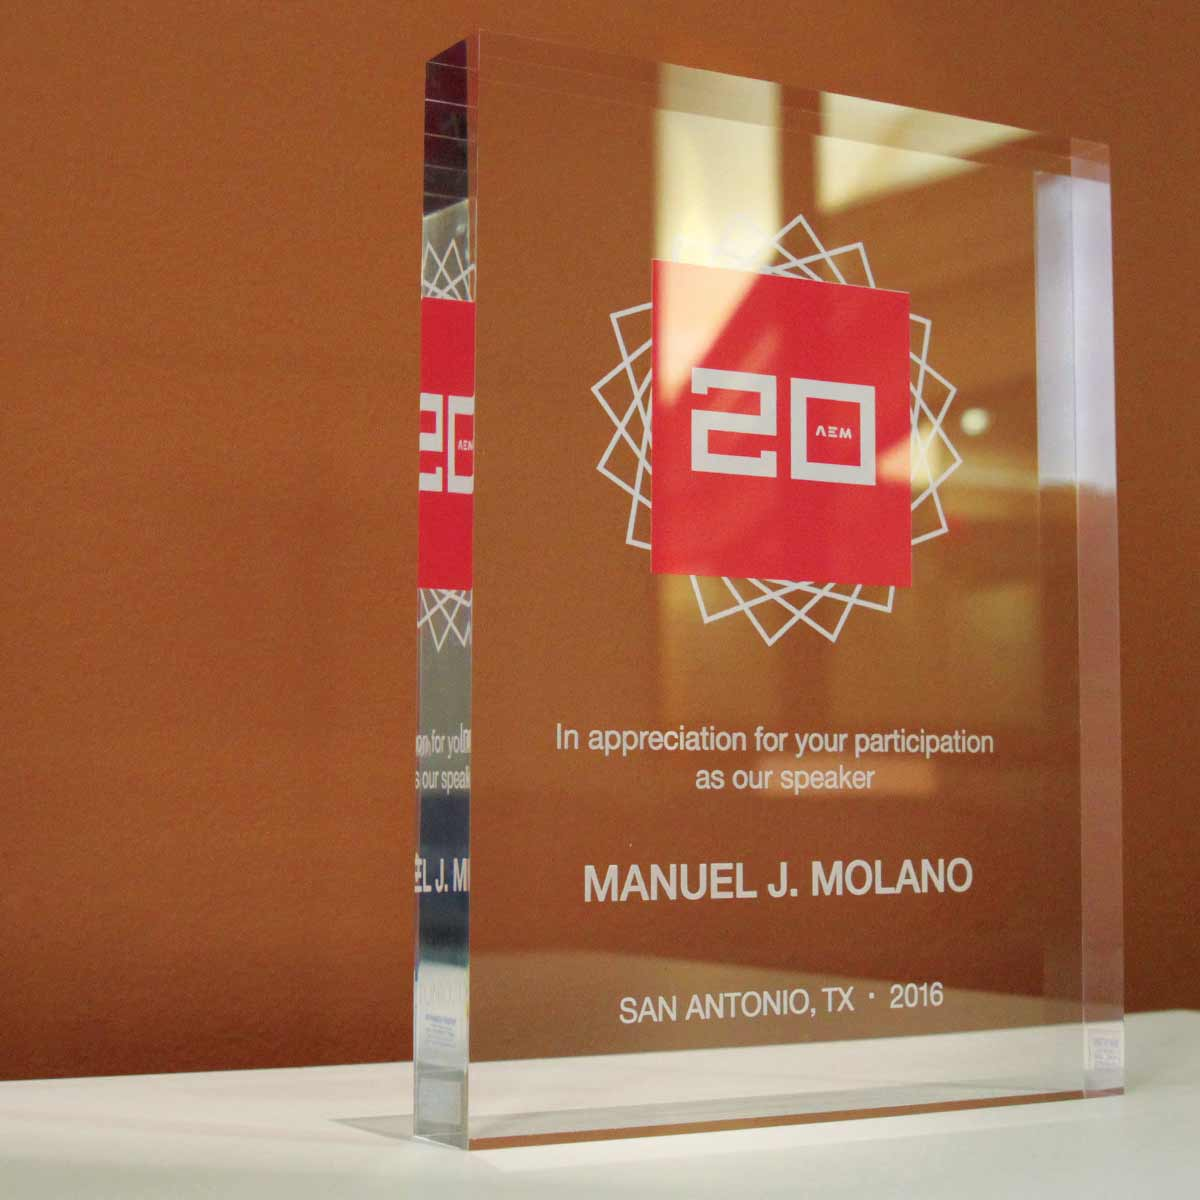 AEM glass award